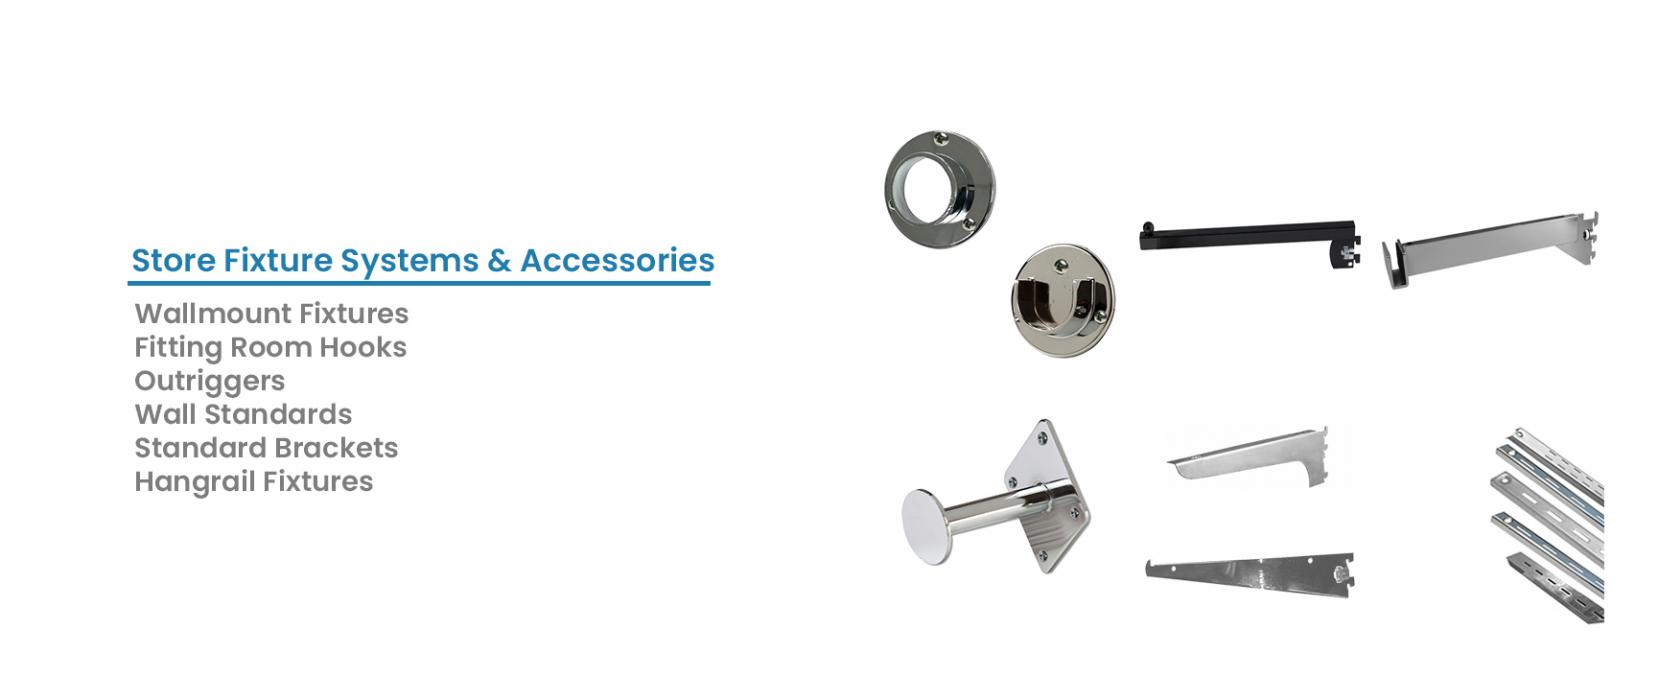 Store Fixture Systems & Accessories